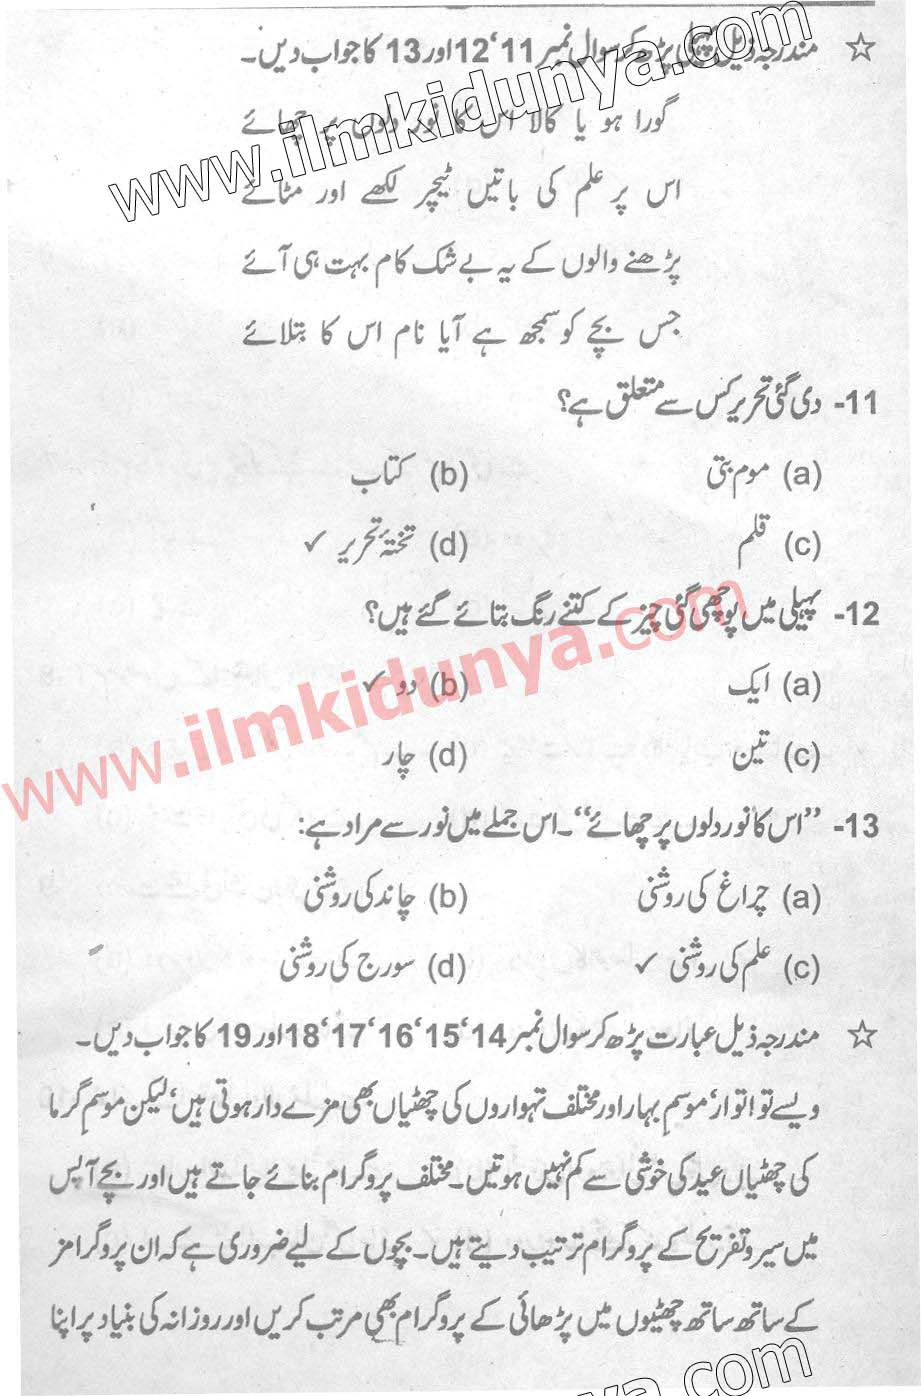 essay on water pollution in urdu language Me and water essay in urdu enron scandal sat essay you, will want to provide essay writing topics urdu language | gold coast pr for students like me who have been there to support me in my career goals.